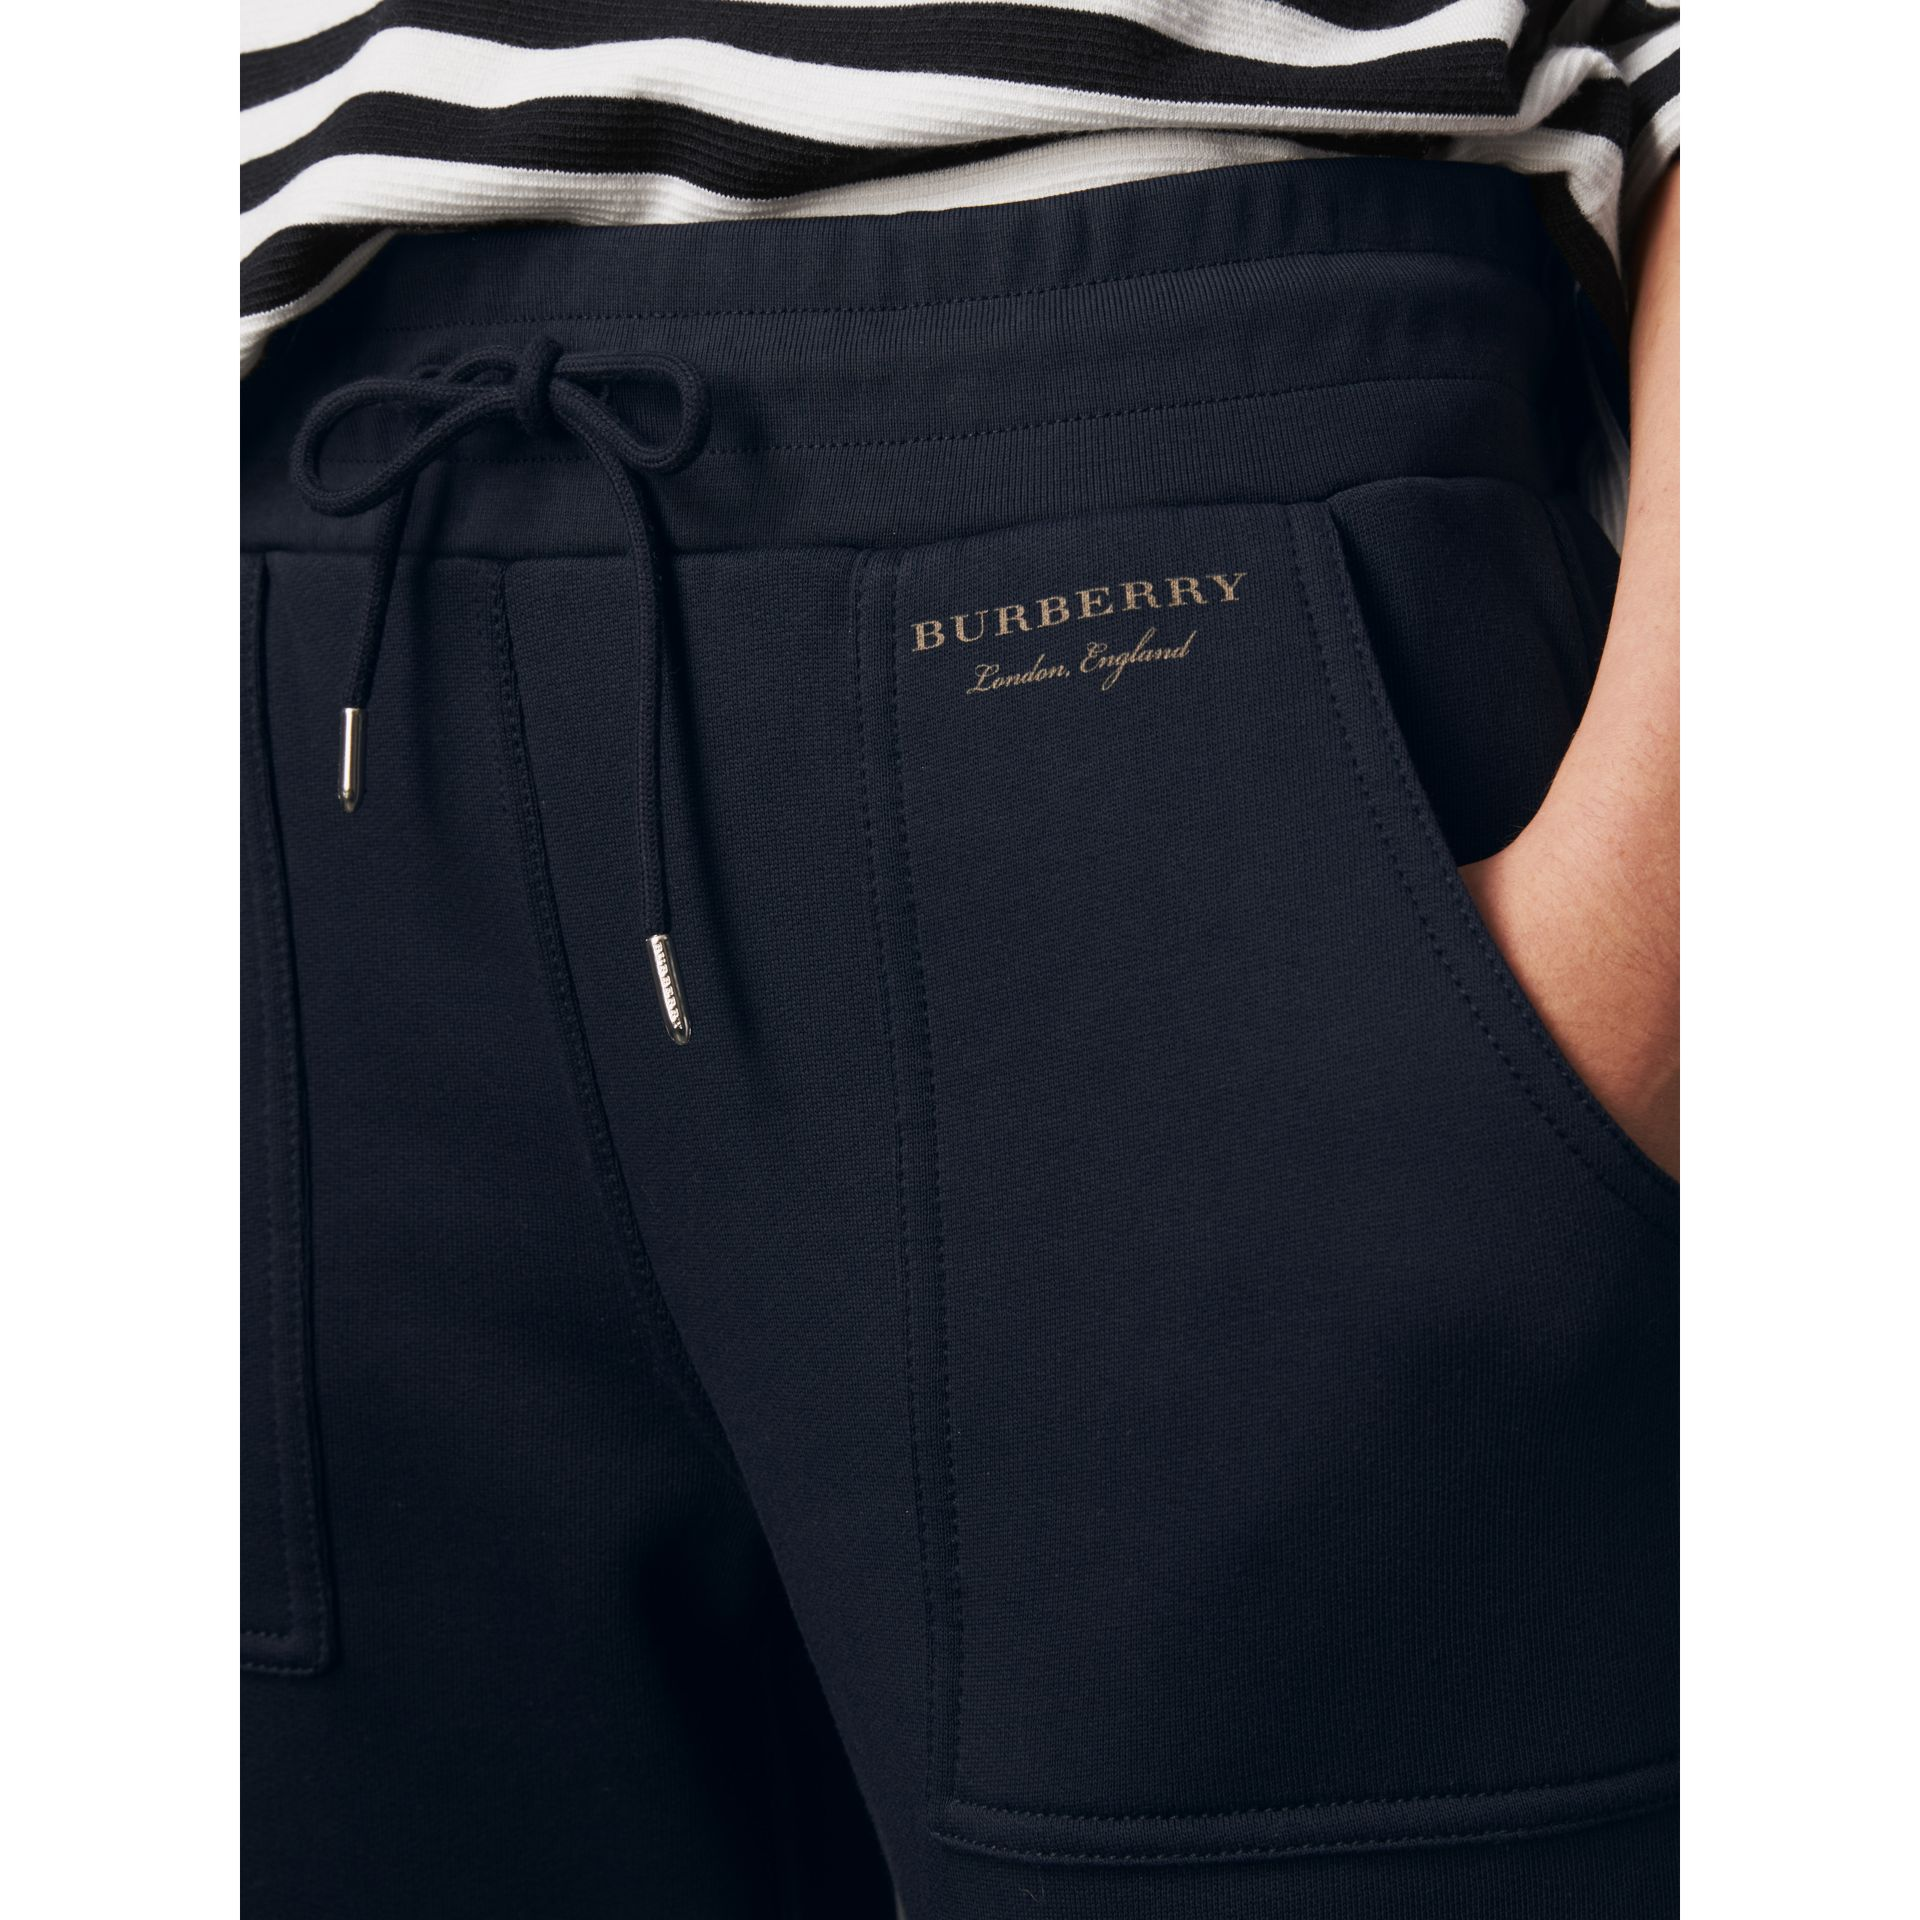 Pantalon de survêtement 7/8 en jersey (Marine) - Femme | Burberry - photo de la galerie 2